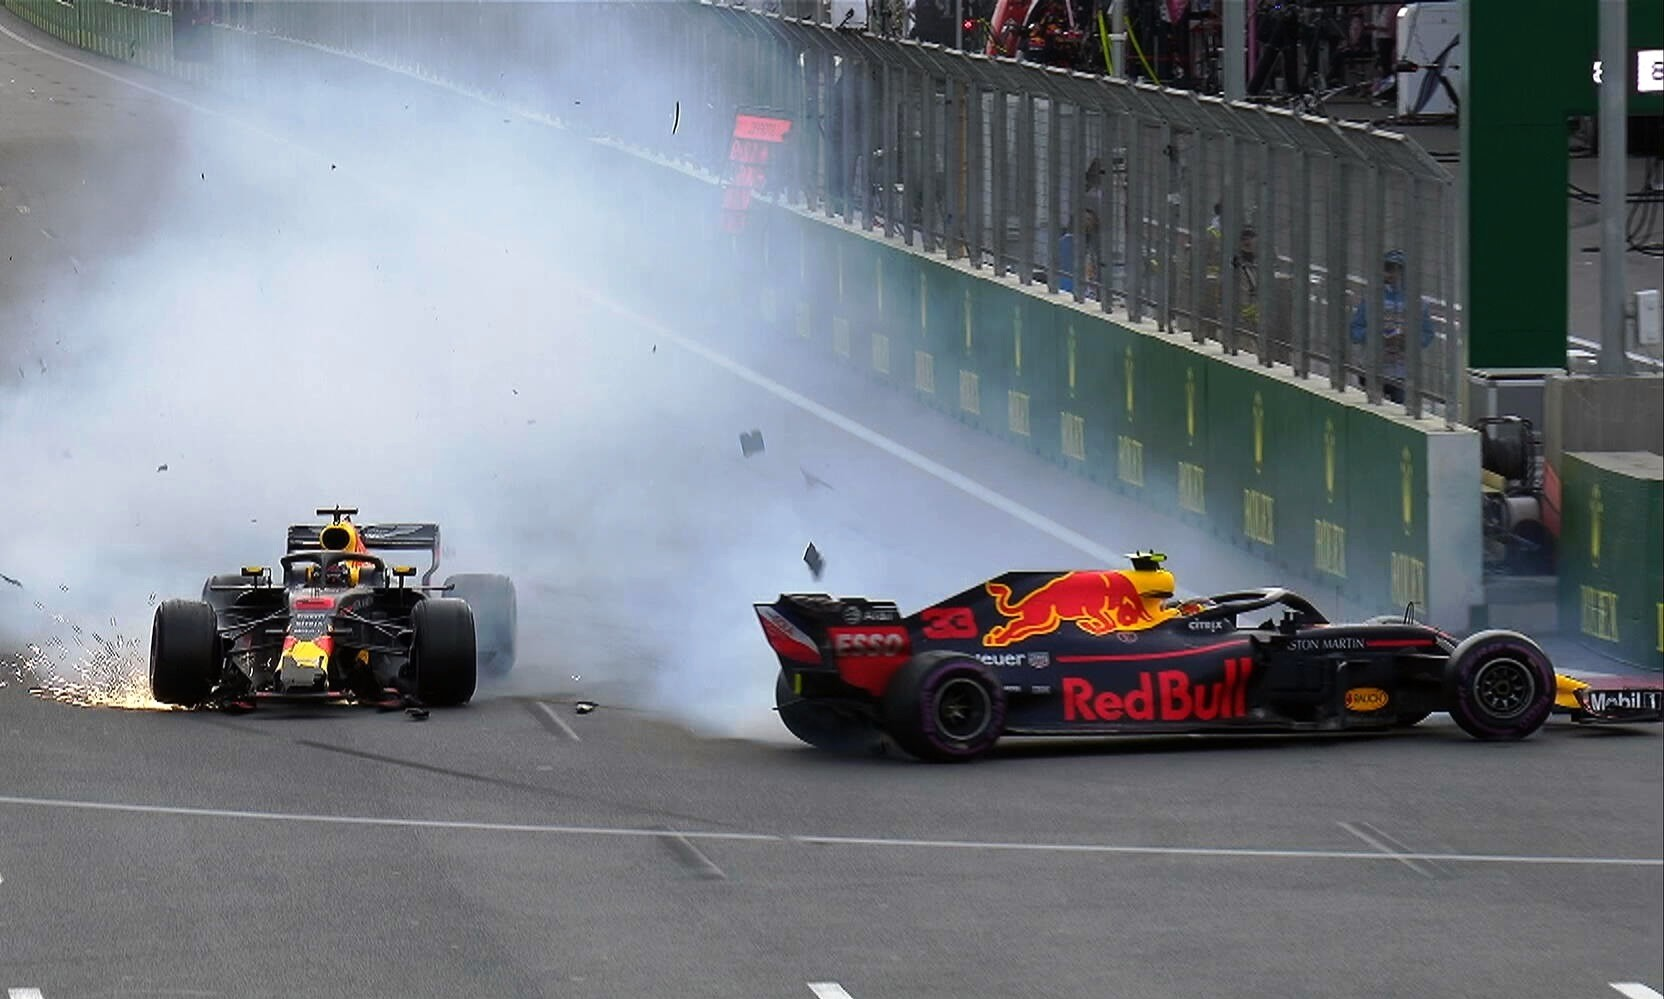 RBR drivers crash into each other at Baku 2018